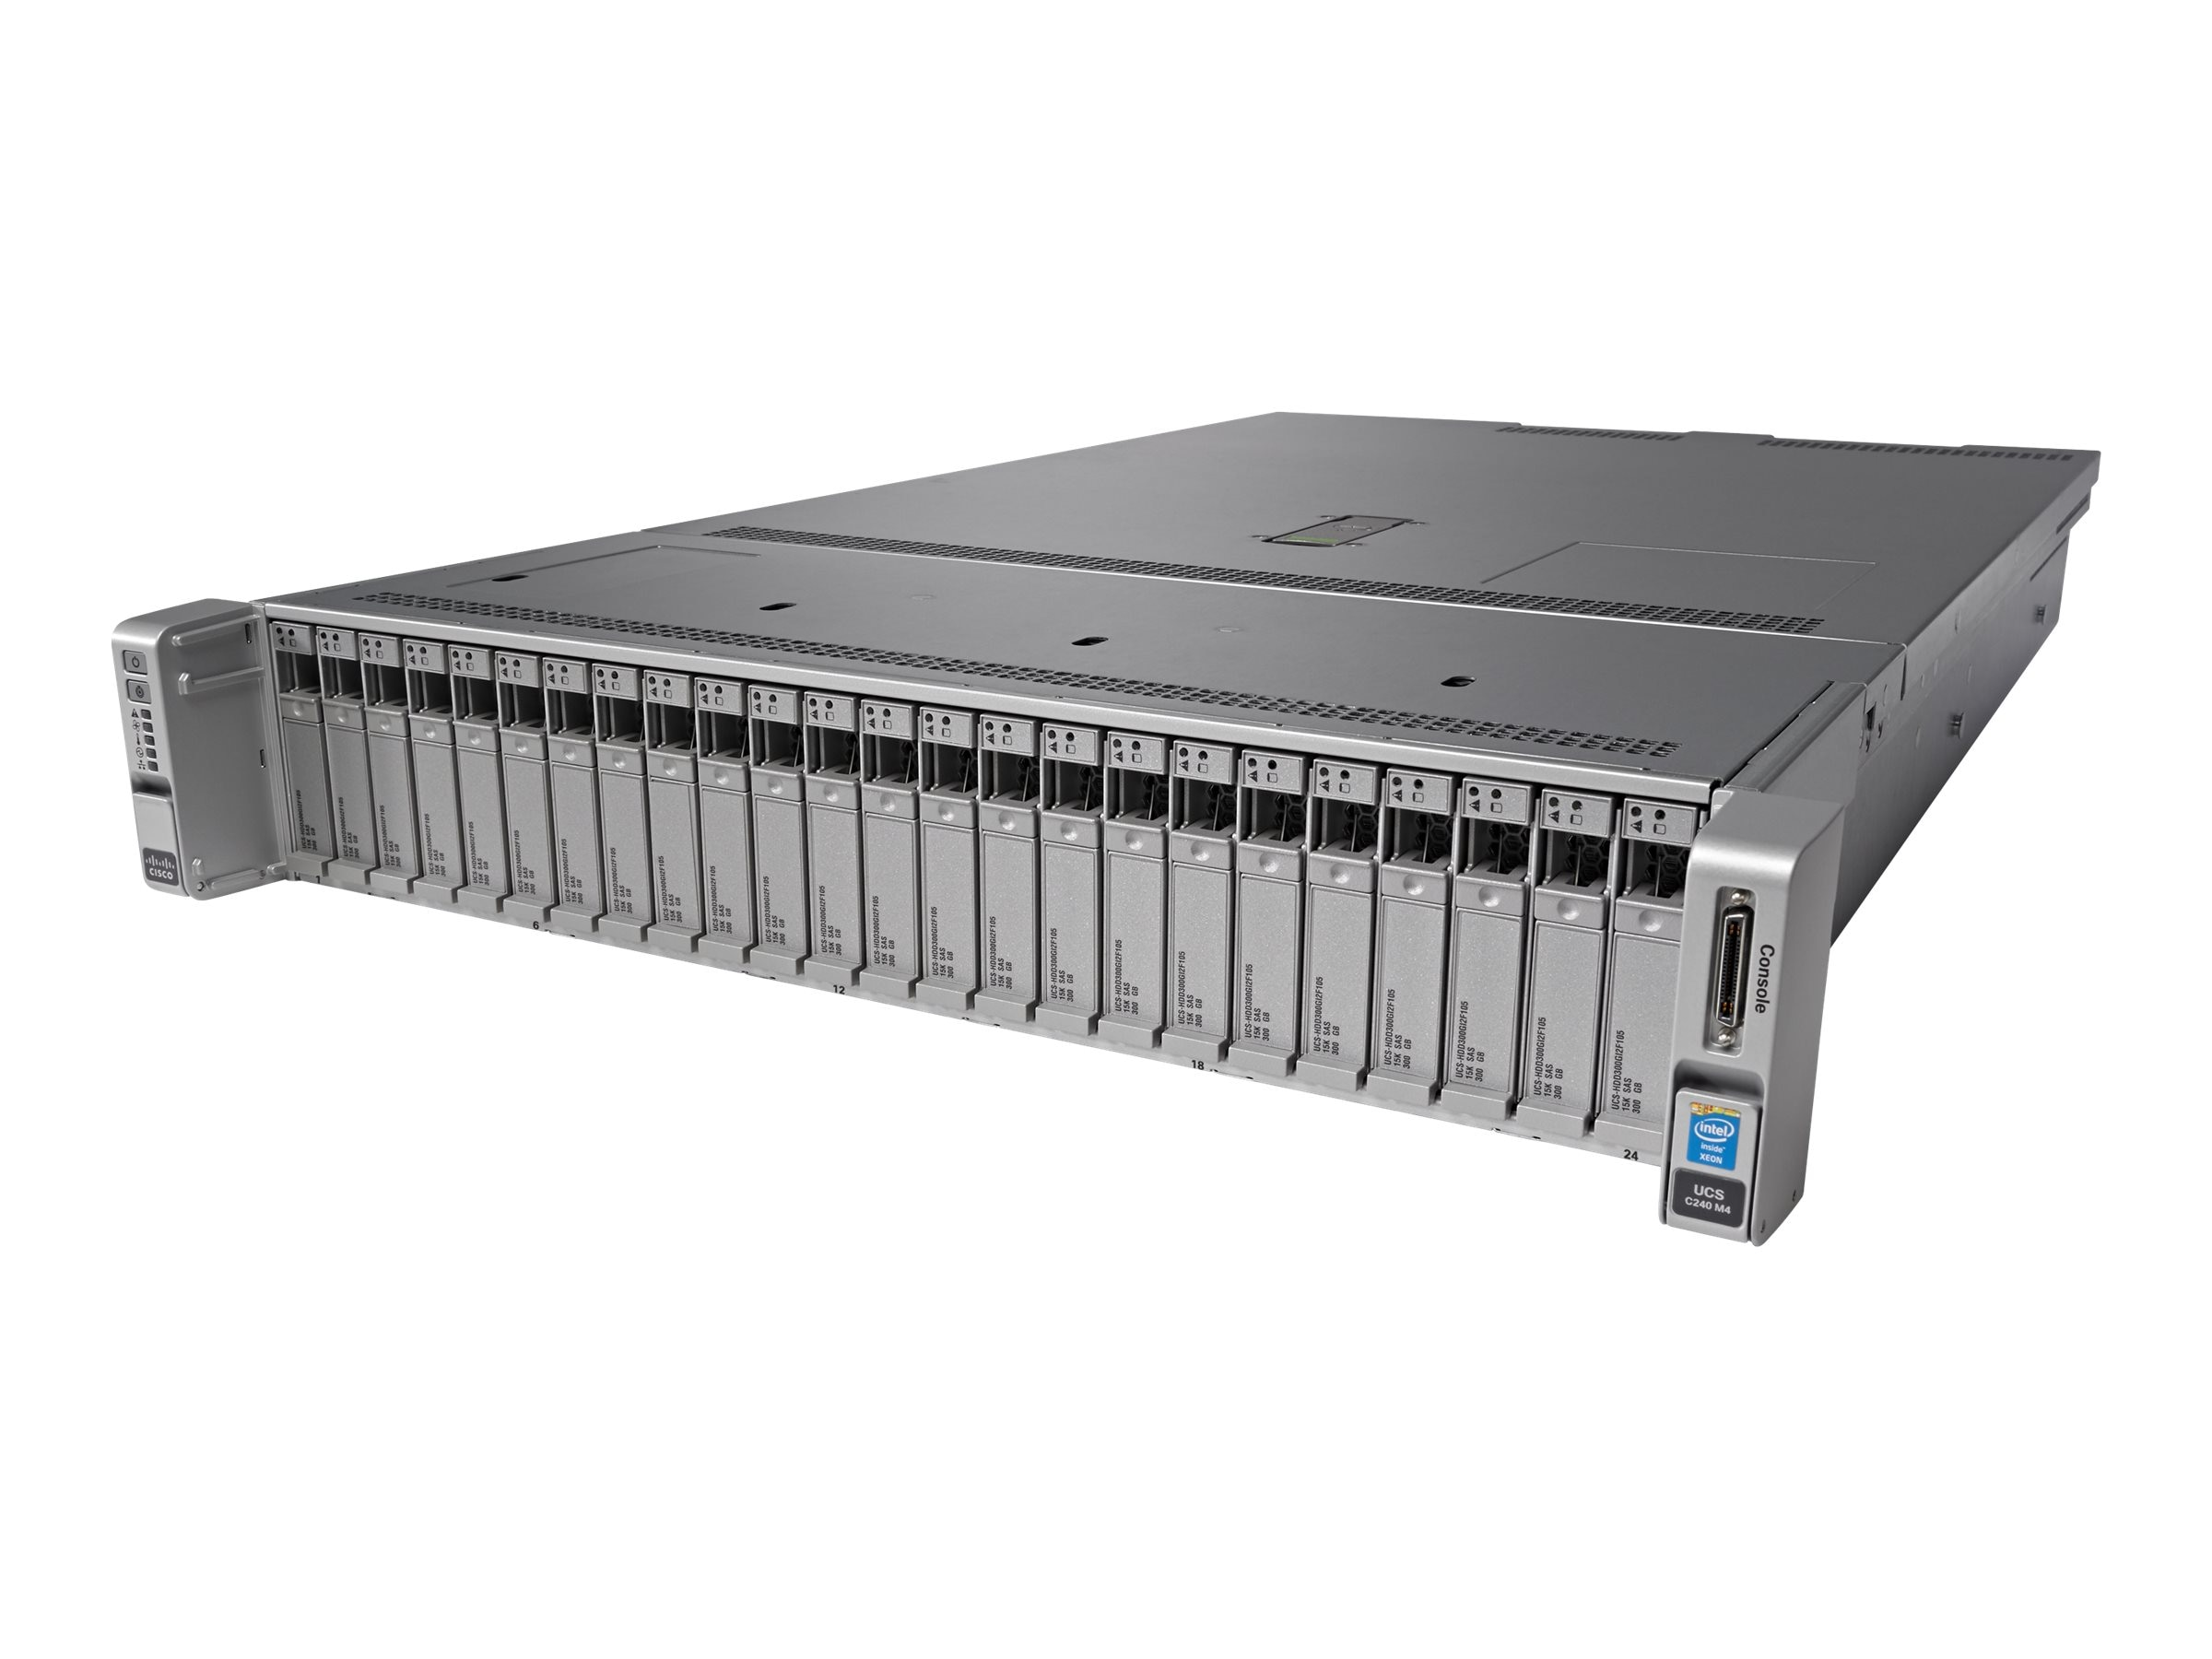 Cisco UCS C240 M4S (2x)Xeon E5-2620 v4 32GB MRAID 32GB SD 2x1200W Rails